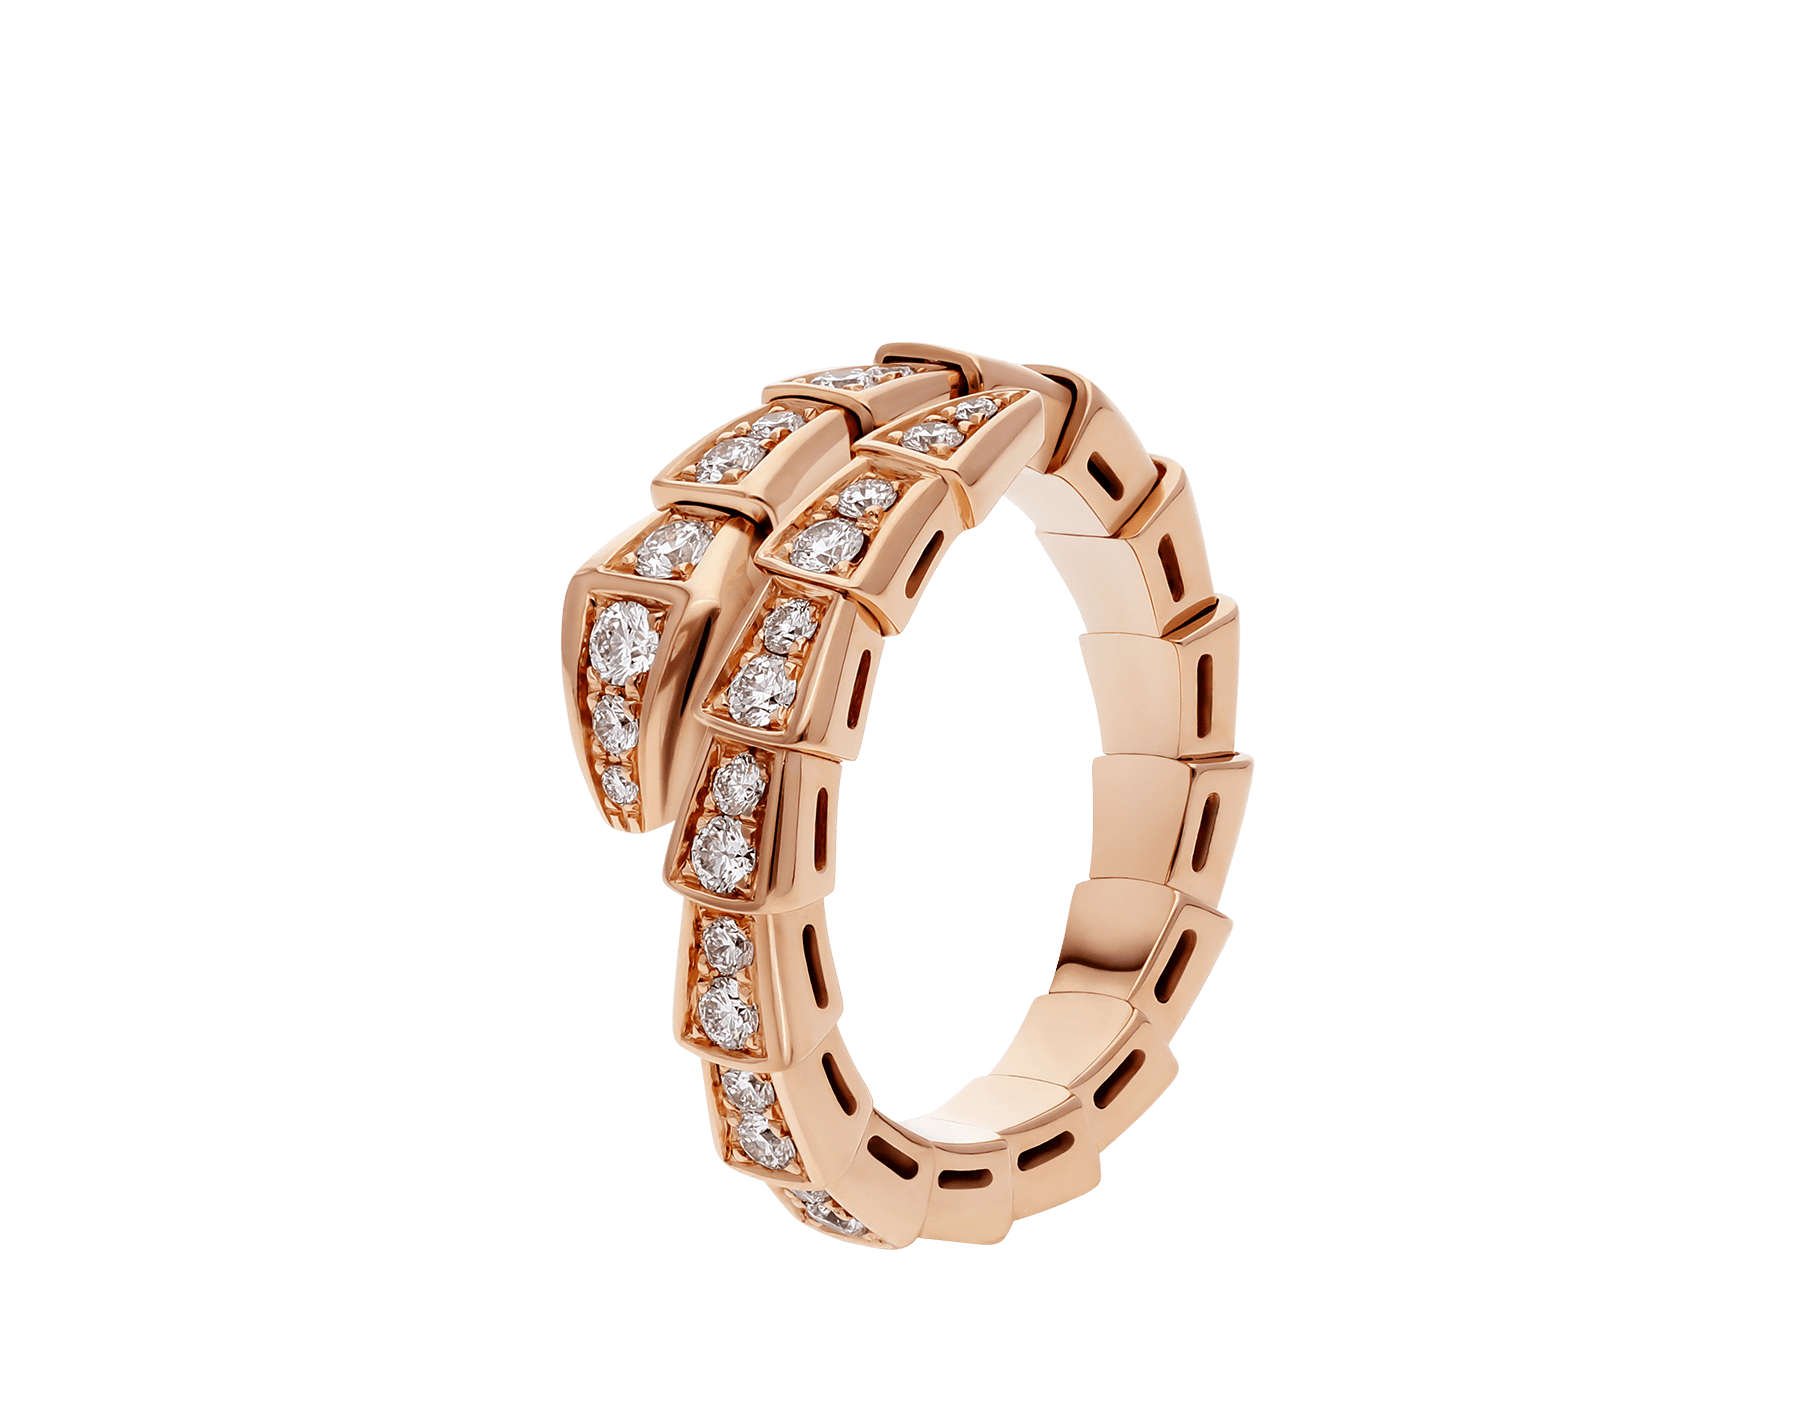 Serpenti Viper 18 kt rose gold ring set with pavé diamonds AN858522 image 1